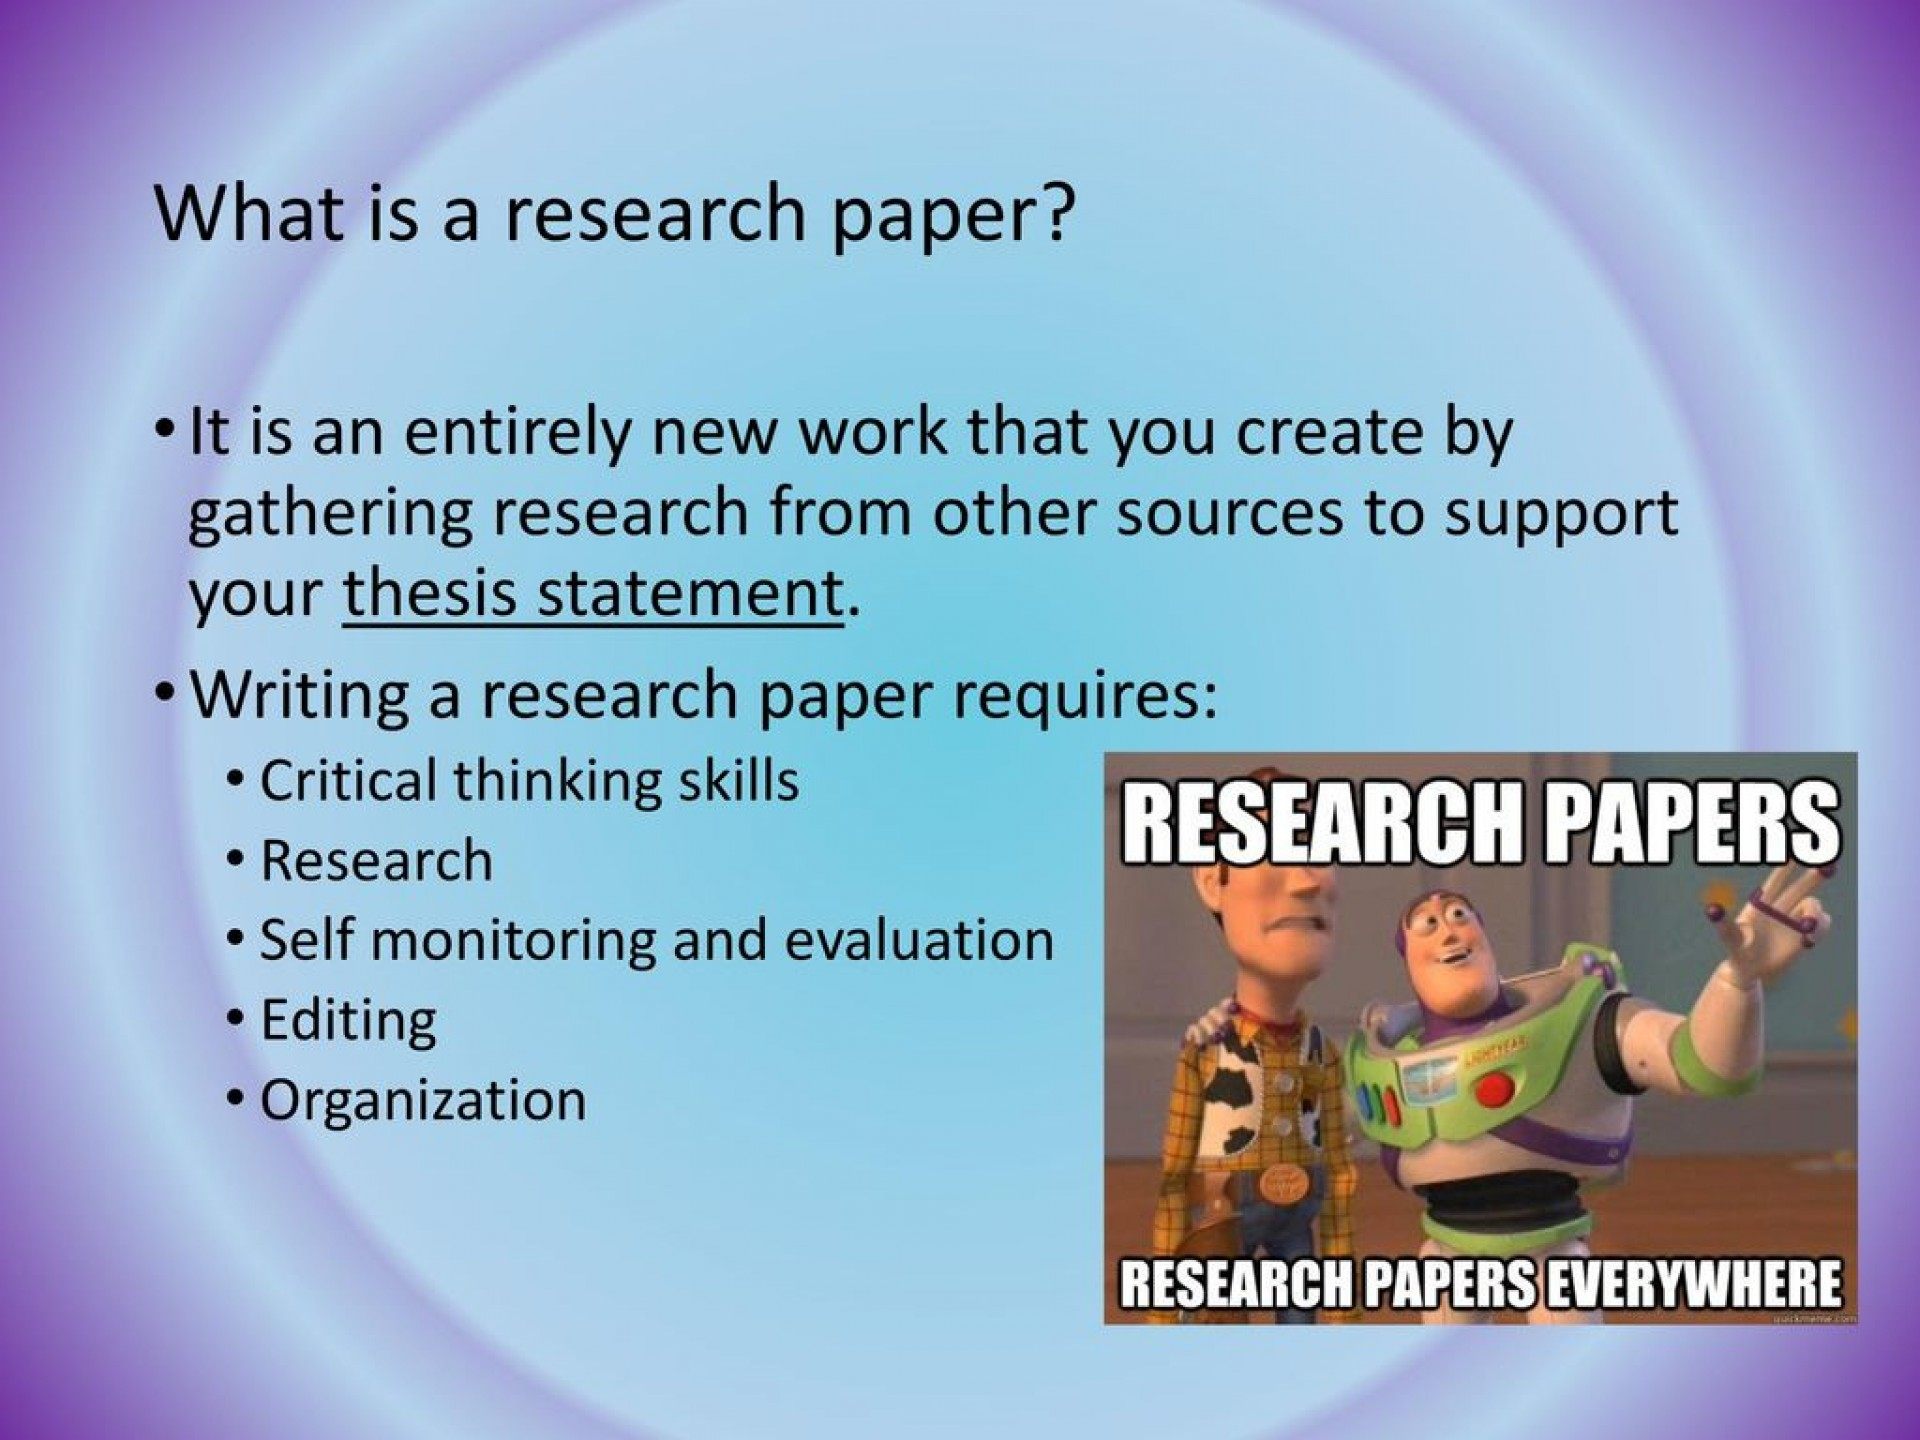 020 Career Research Paper Thesis Statement Stirring For My Good 1920